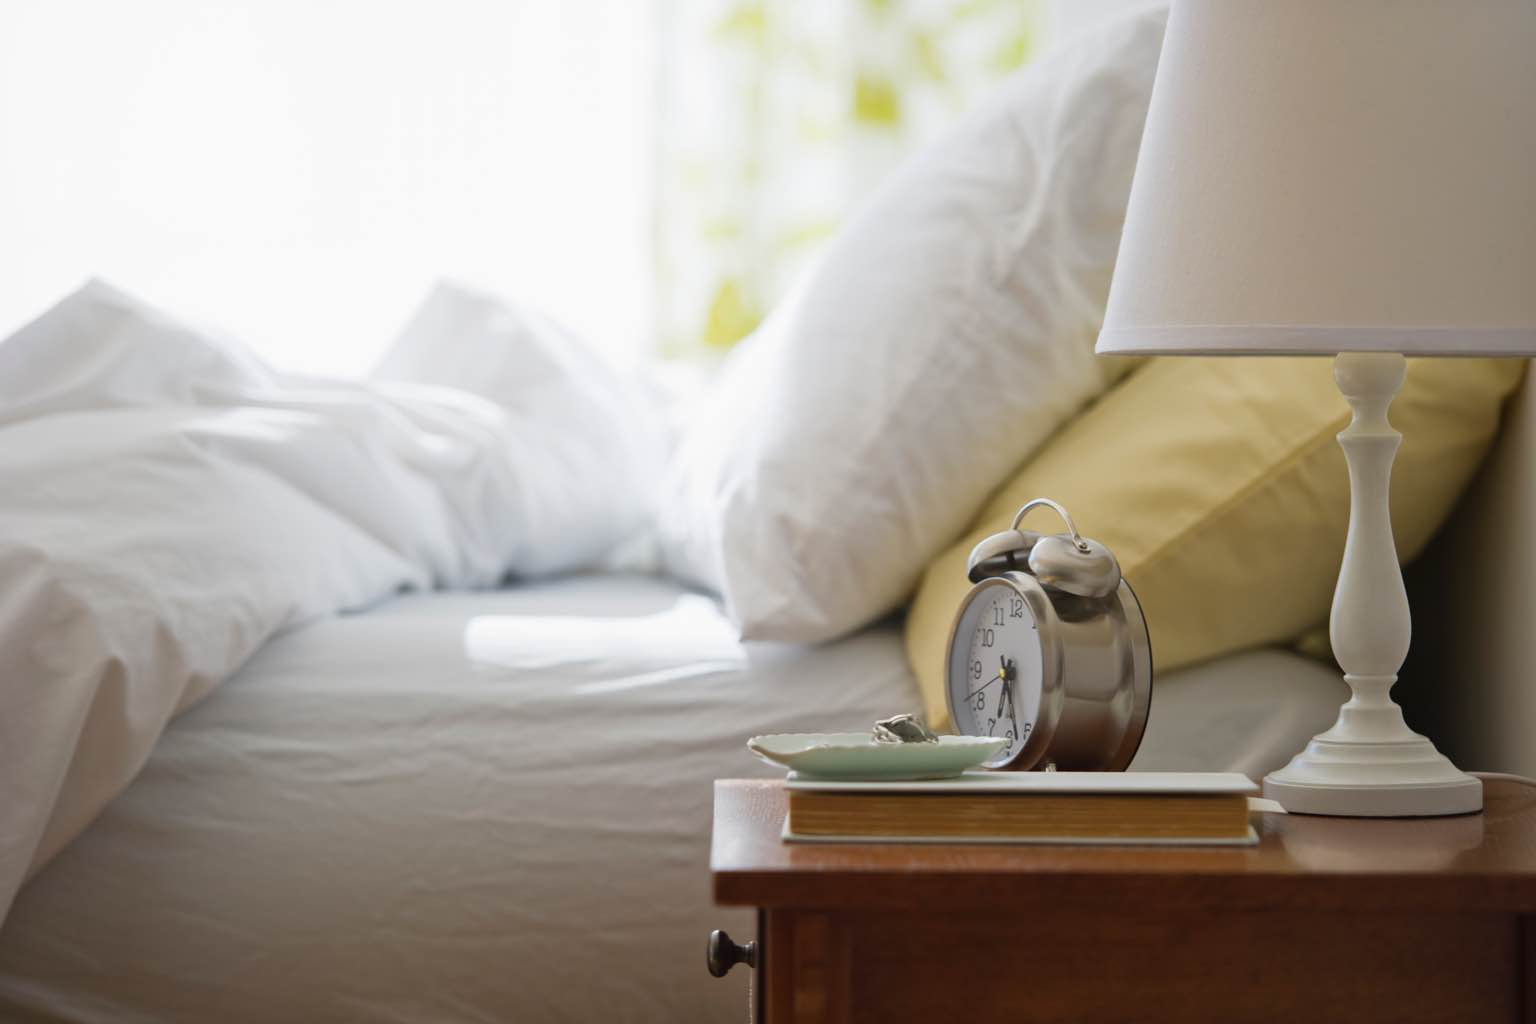 Nightstand with lamp and alarm clock next to a bed